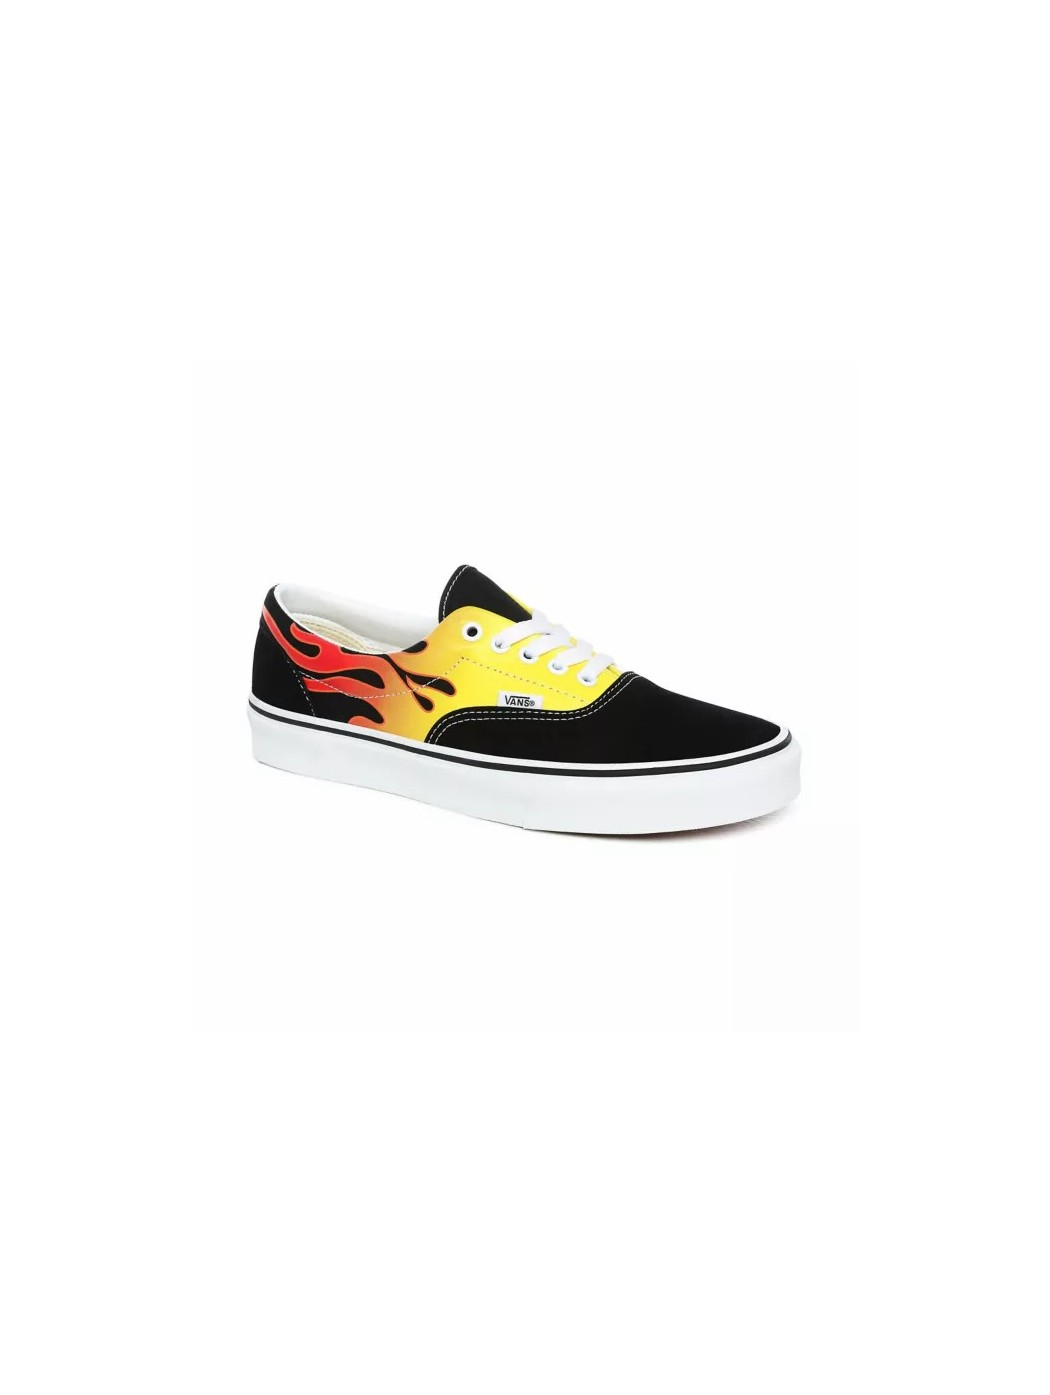 UA ERA FLAME BLACK/TRUE WHITE VANS VN0A4BV4 XEY1